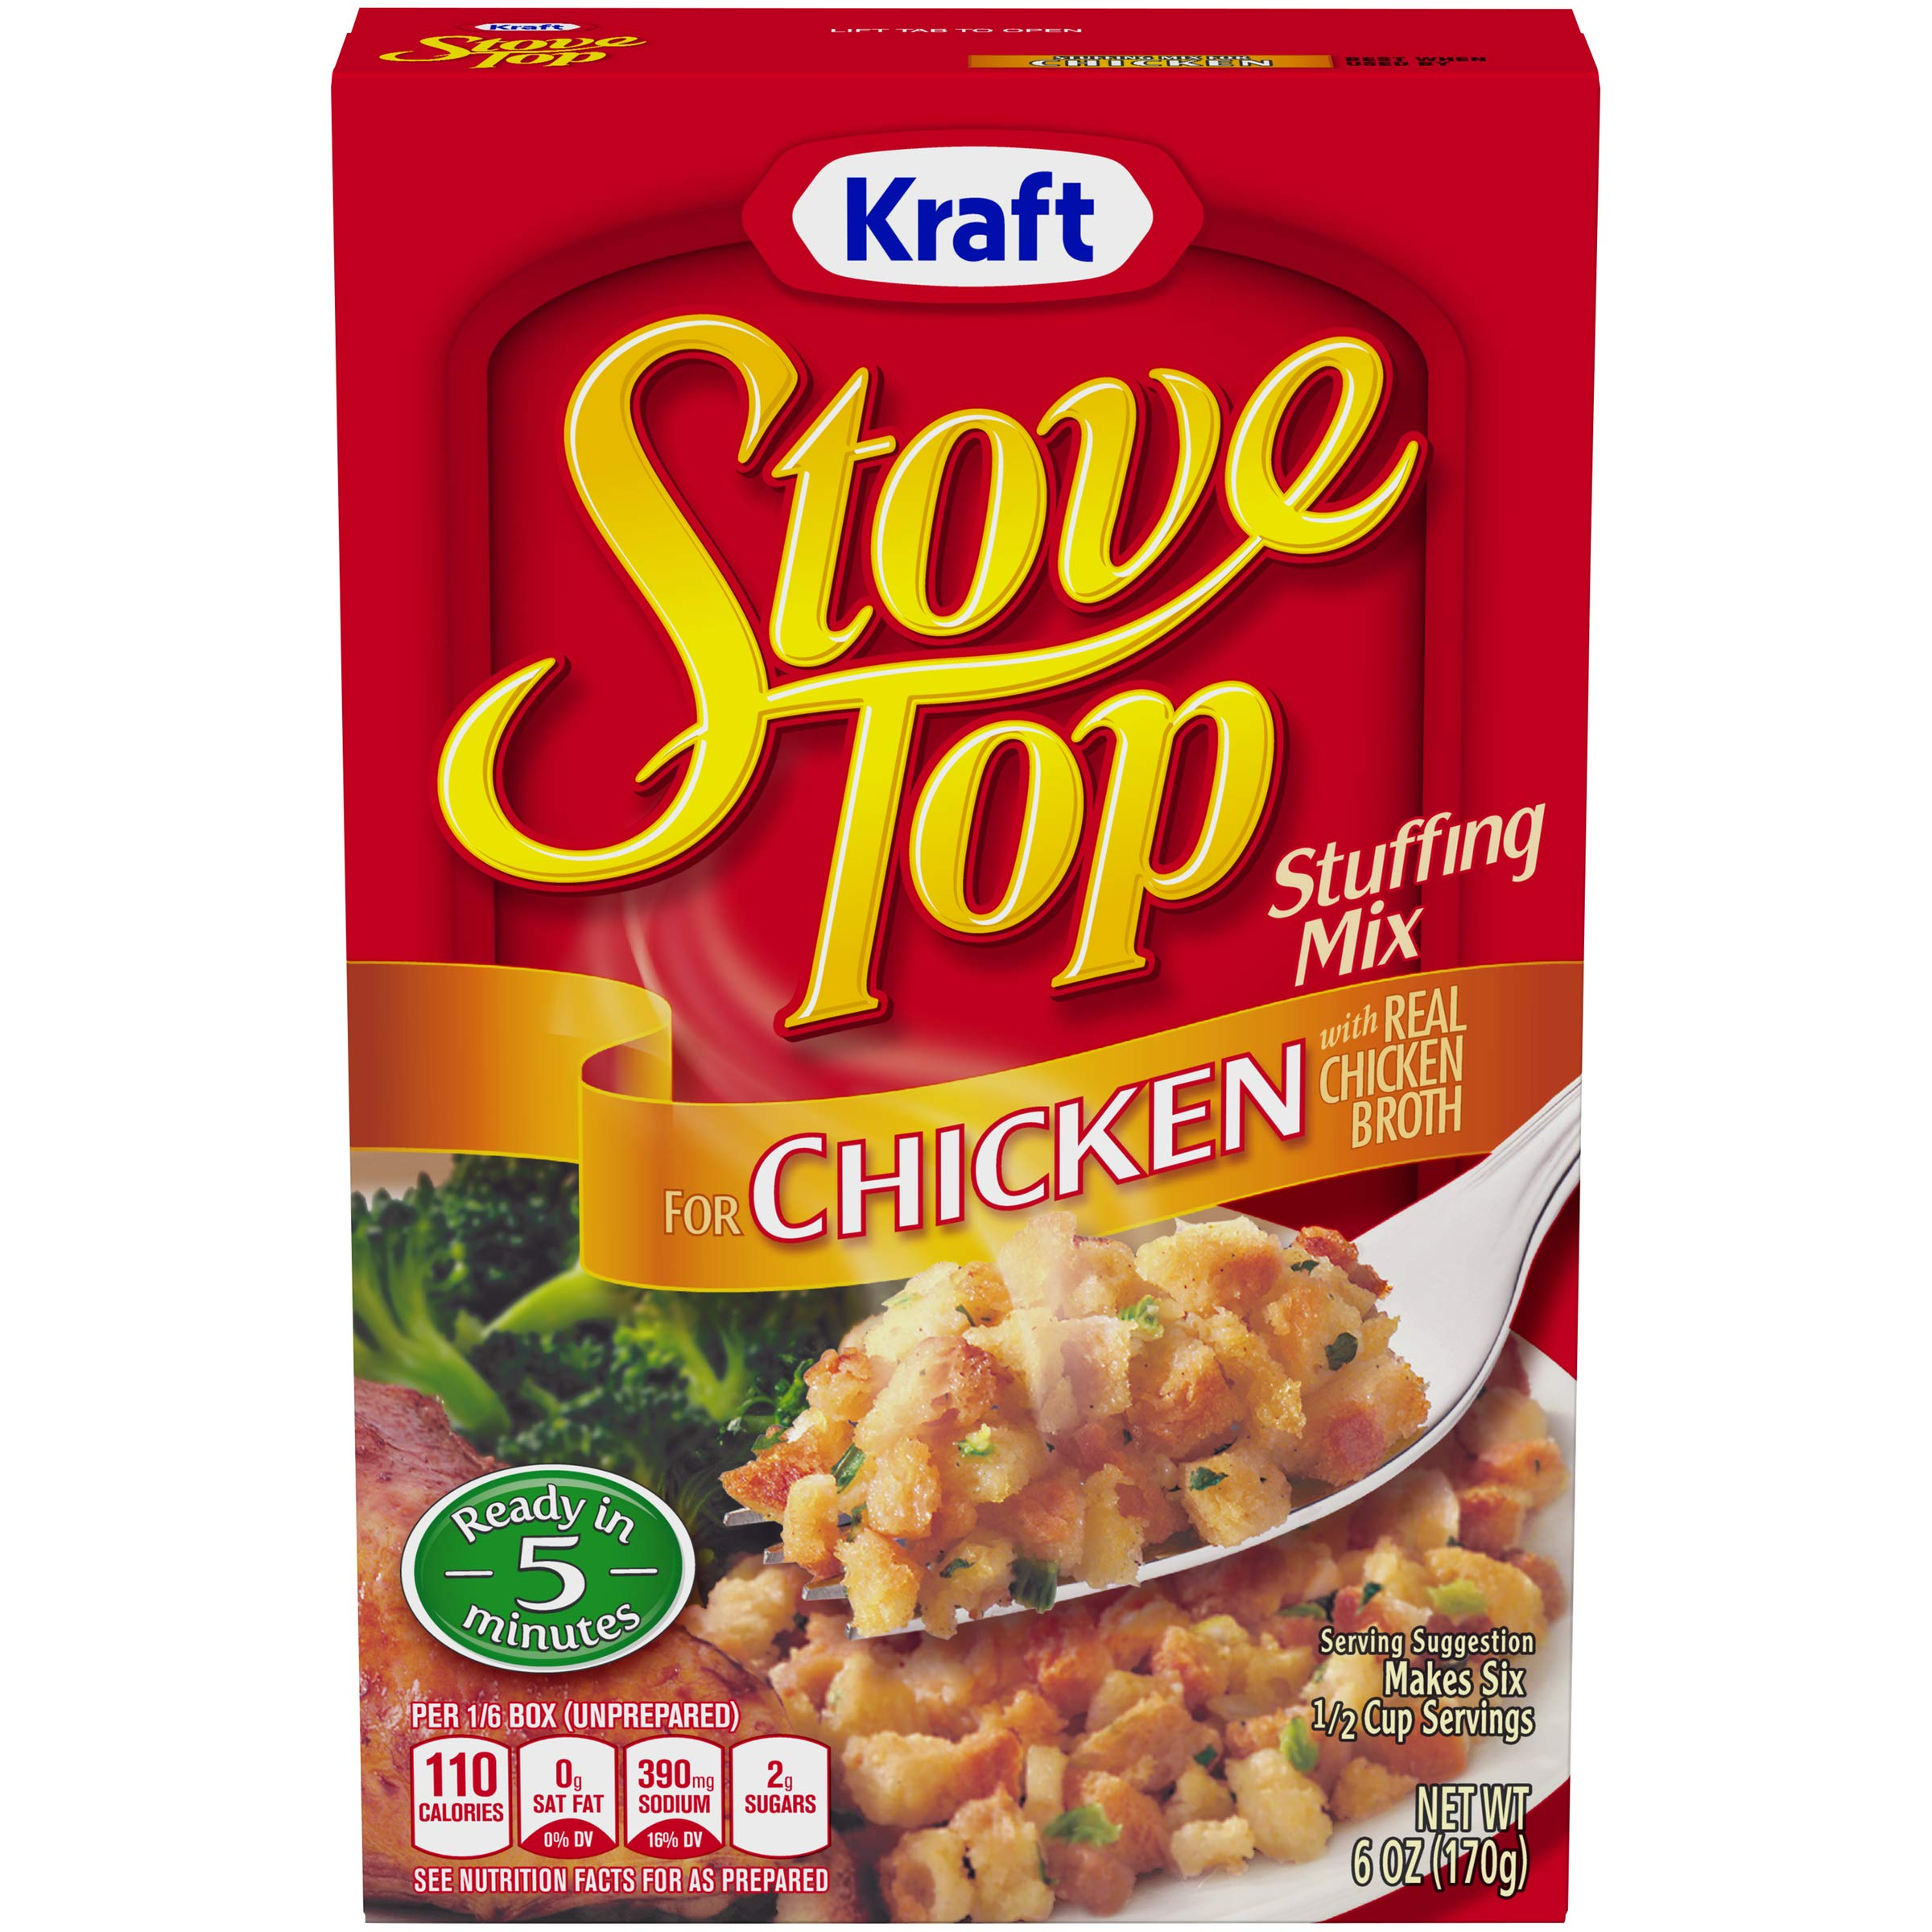 Kraft Stove Top Stuffing Mix for Chicken, 6 oz Box